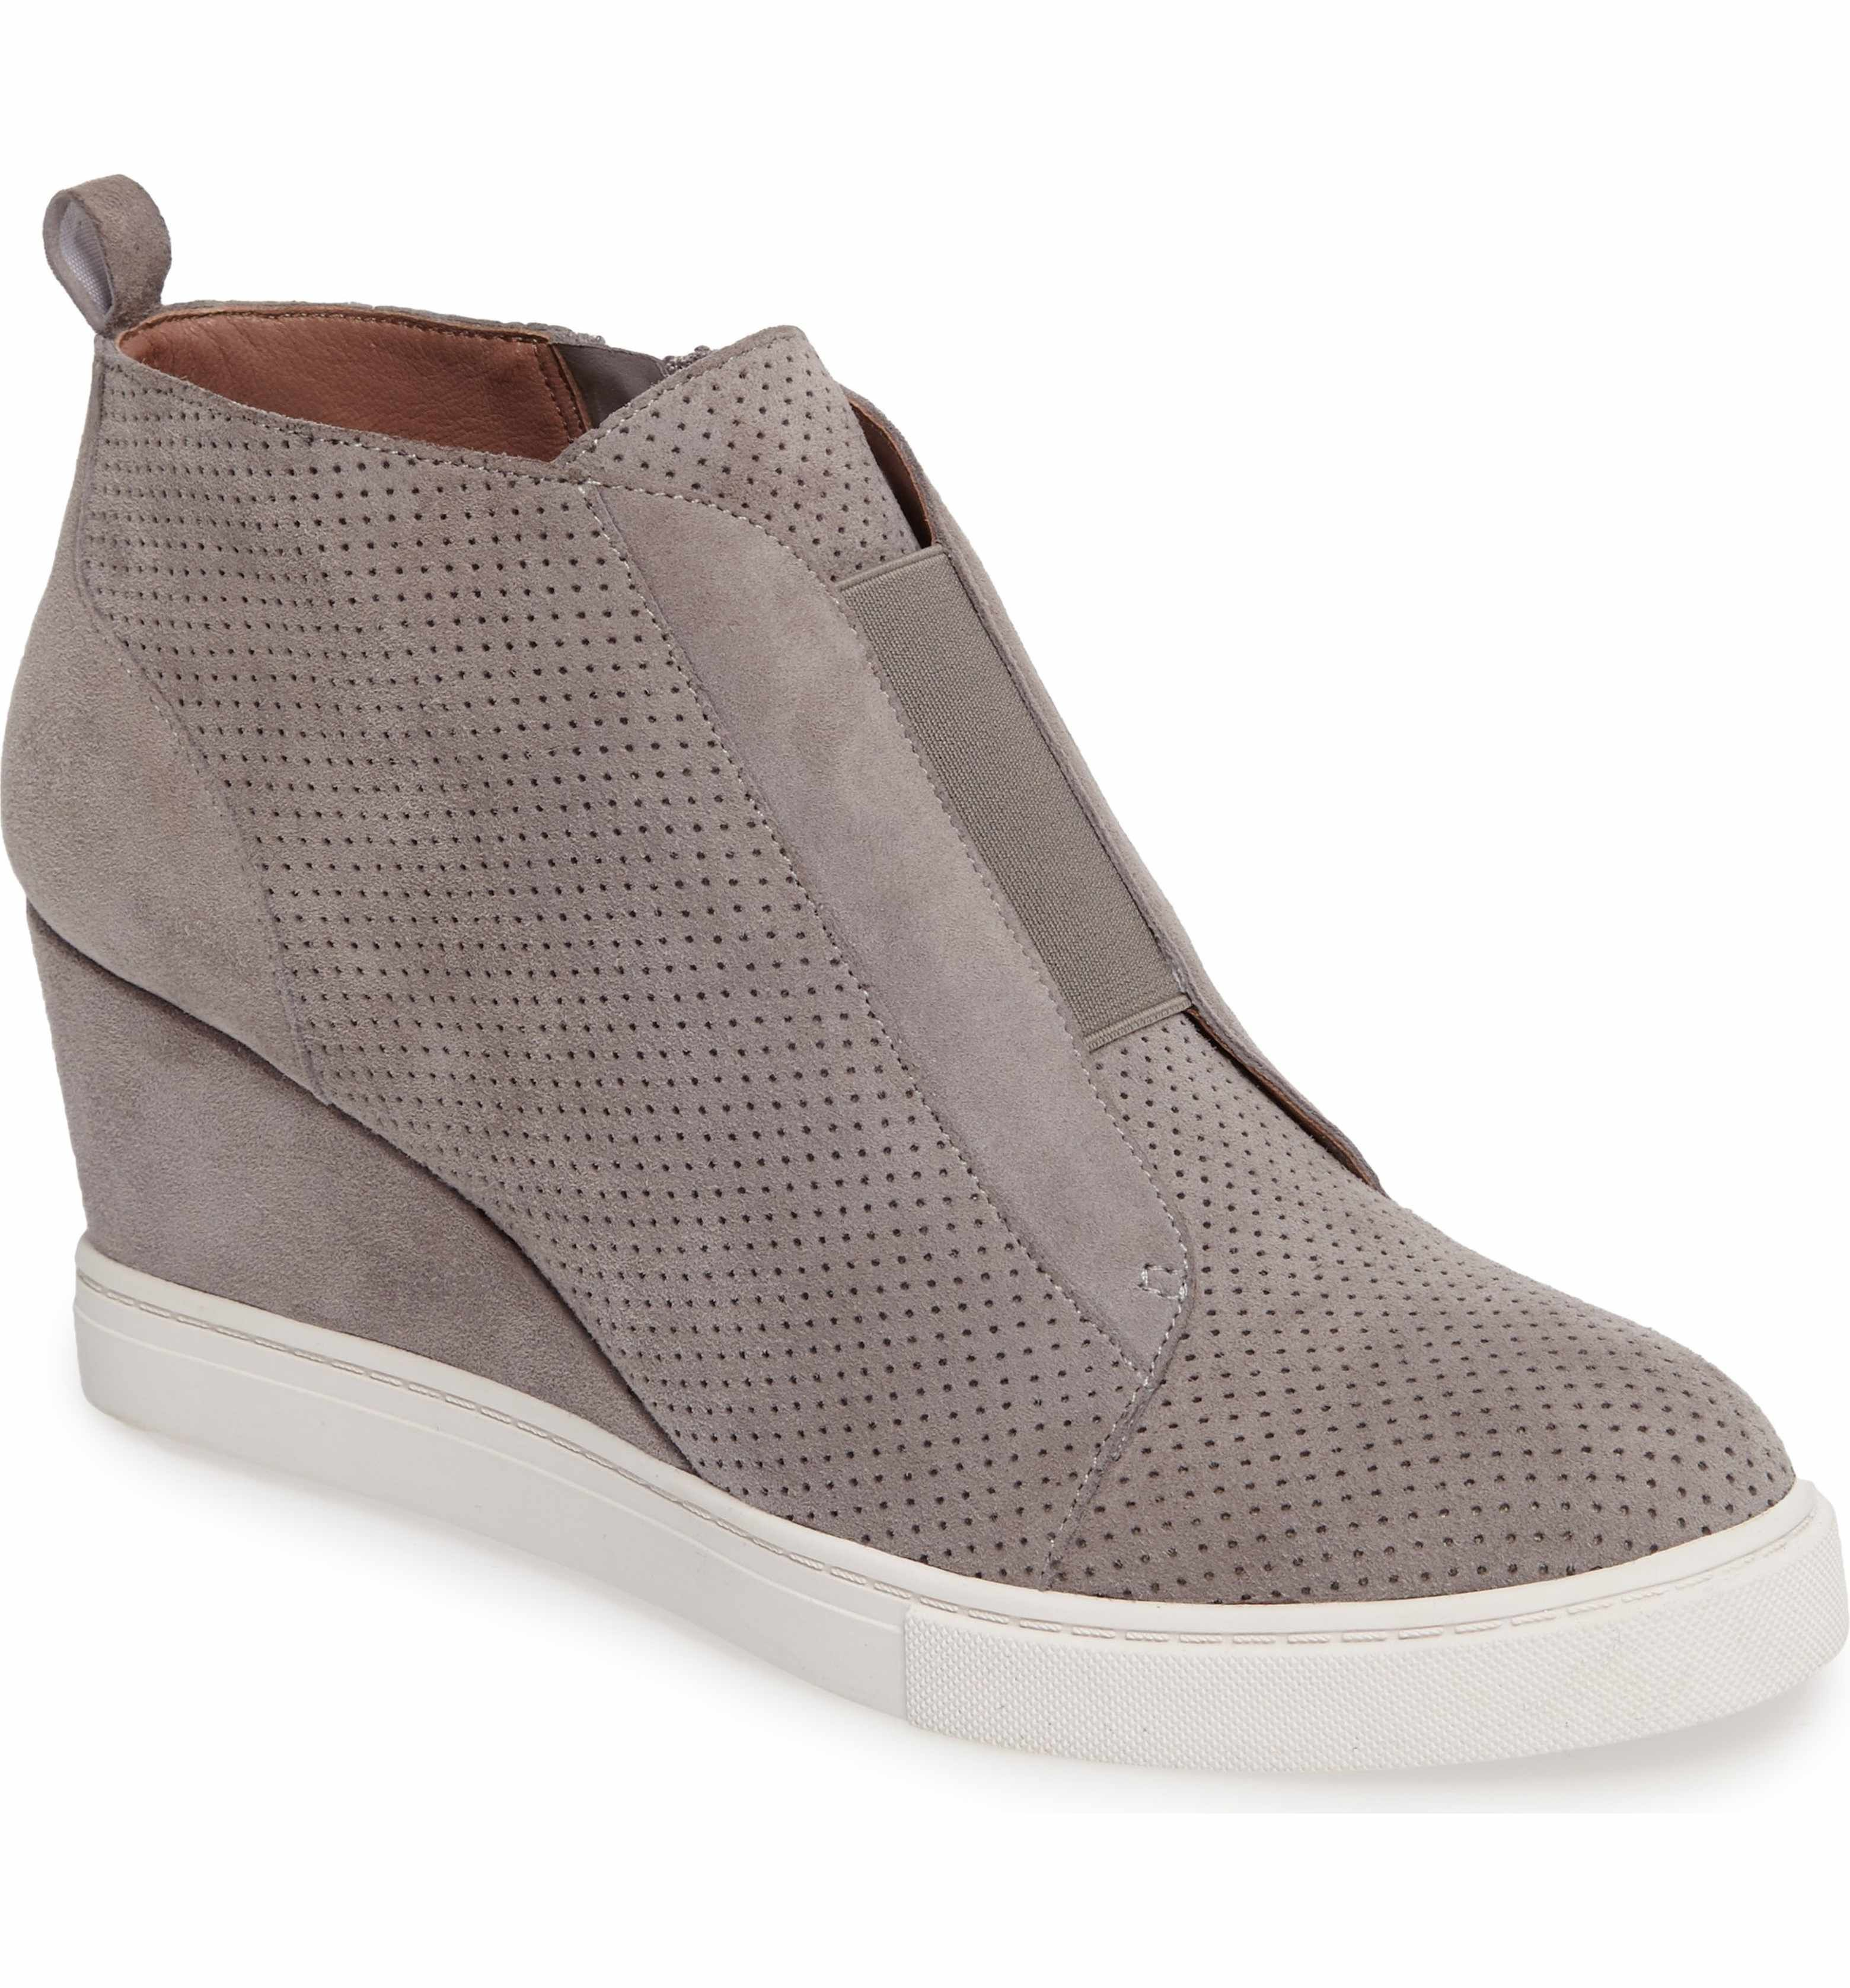 b3c2e43f7ba6 Nordstrom Linea Paolo  Felicia  Wedge Bootie in Rock Perf (size 6) -  119.95